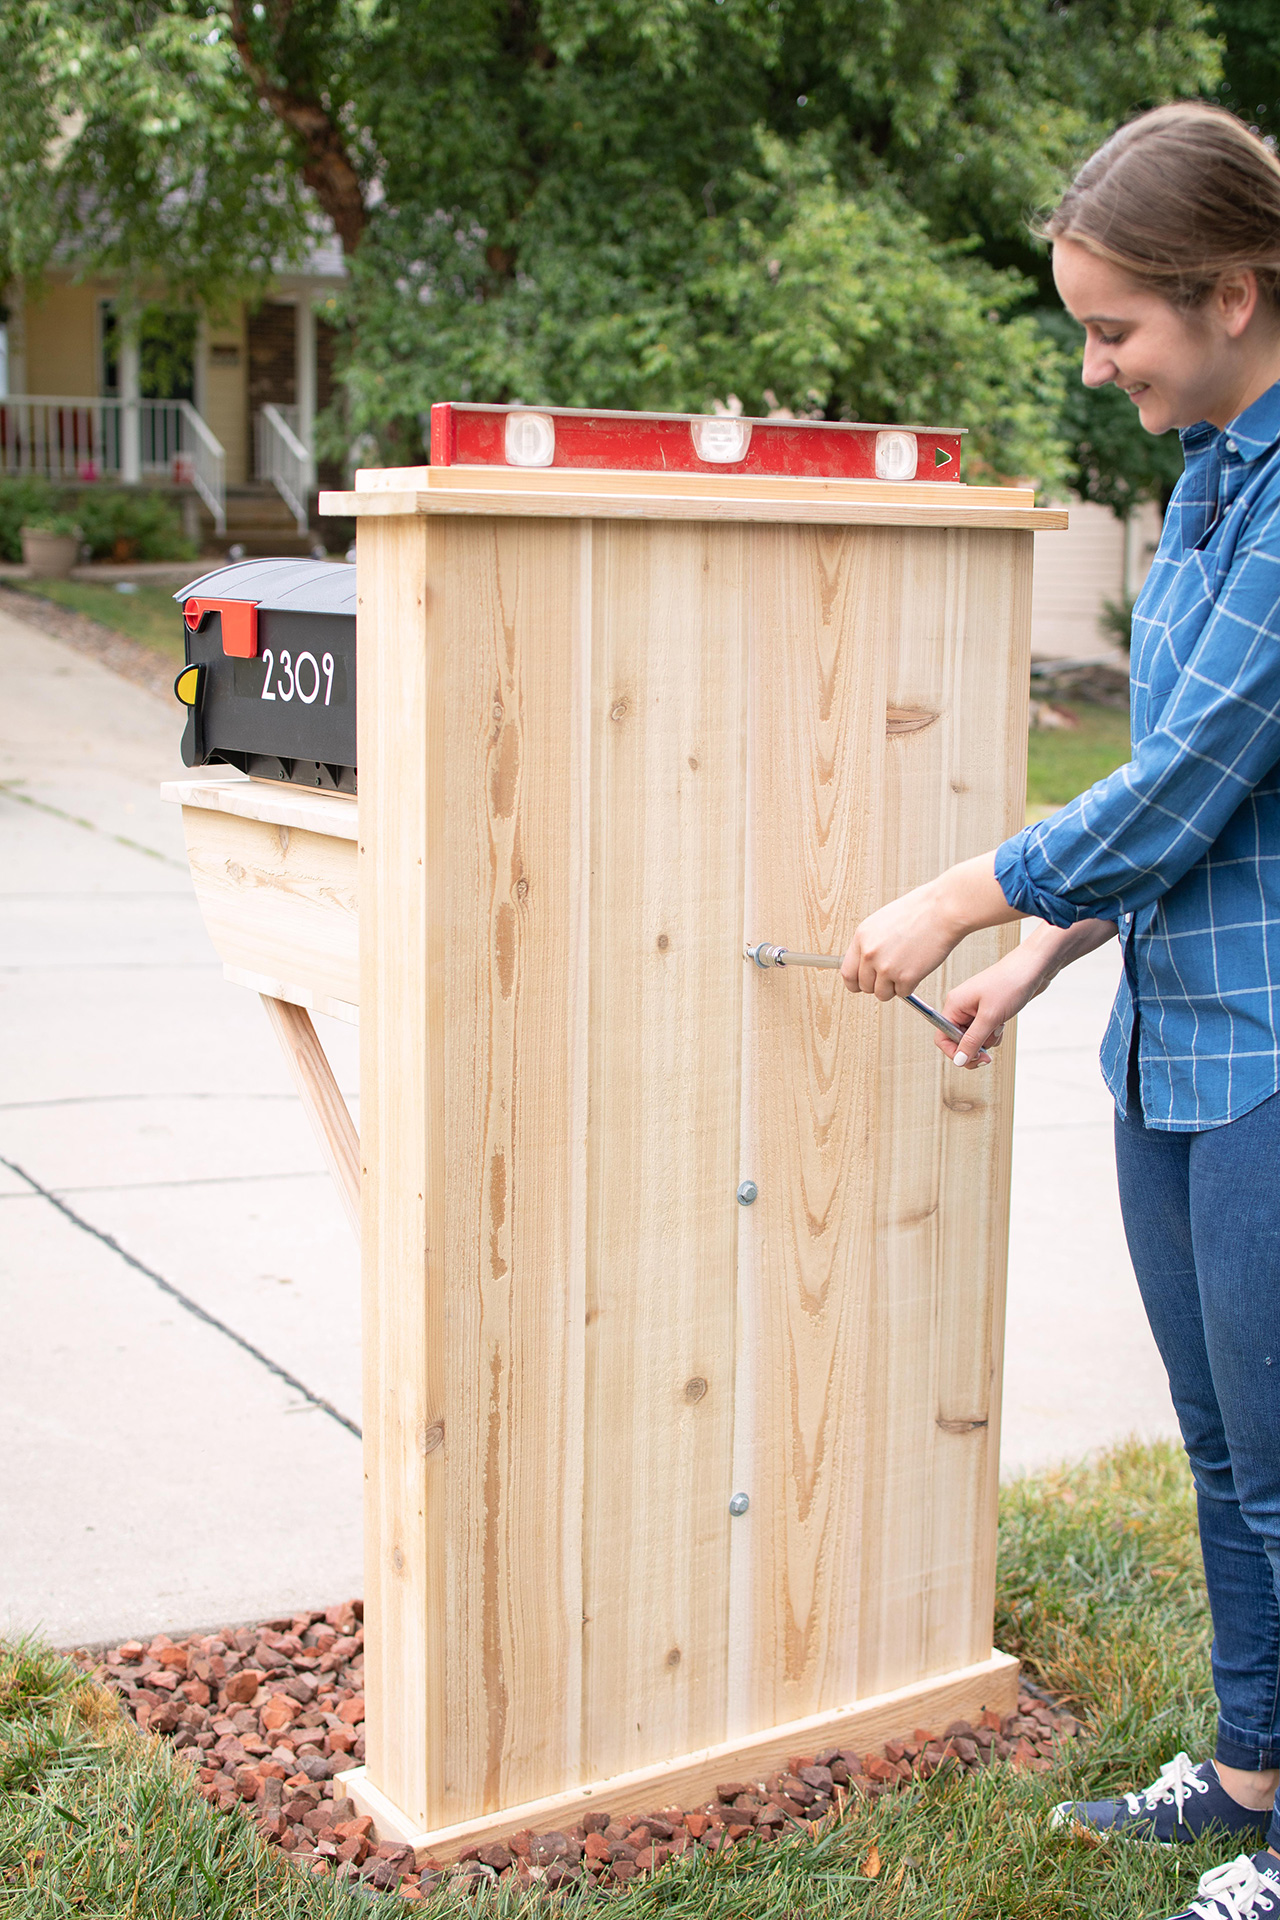 using tools to level wood mailbox structure